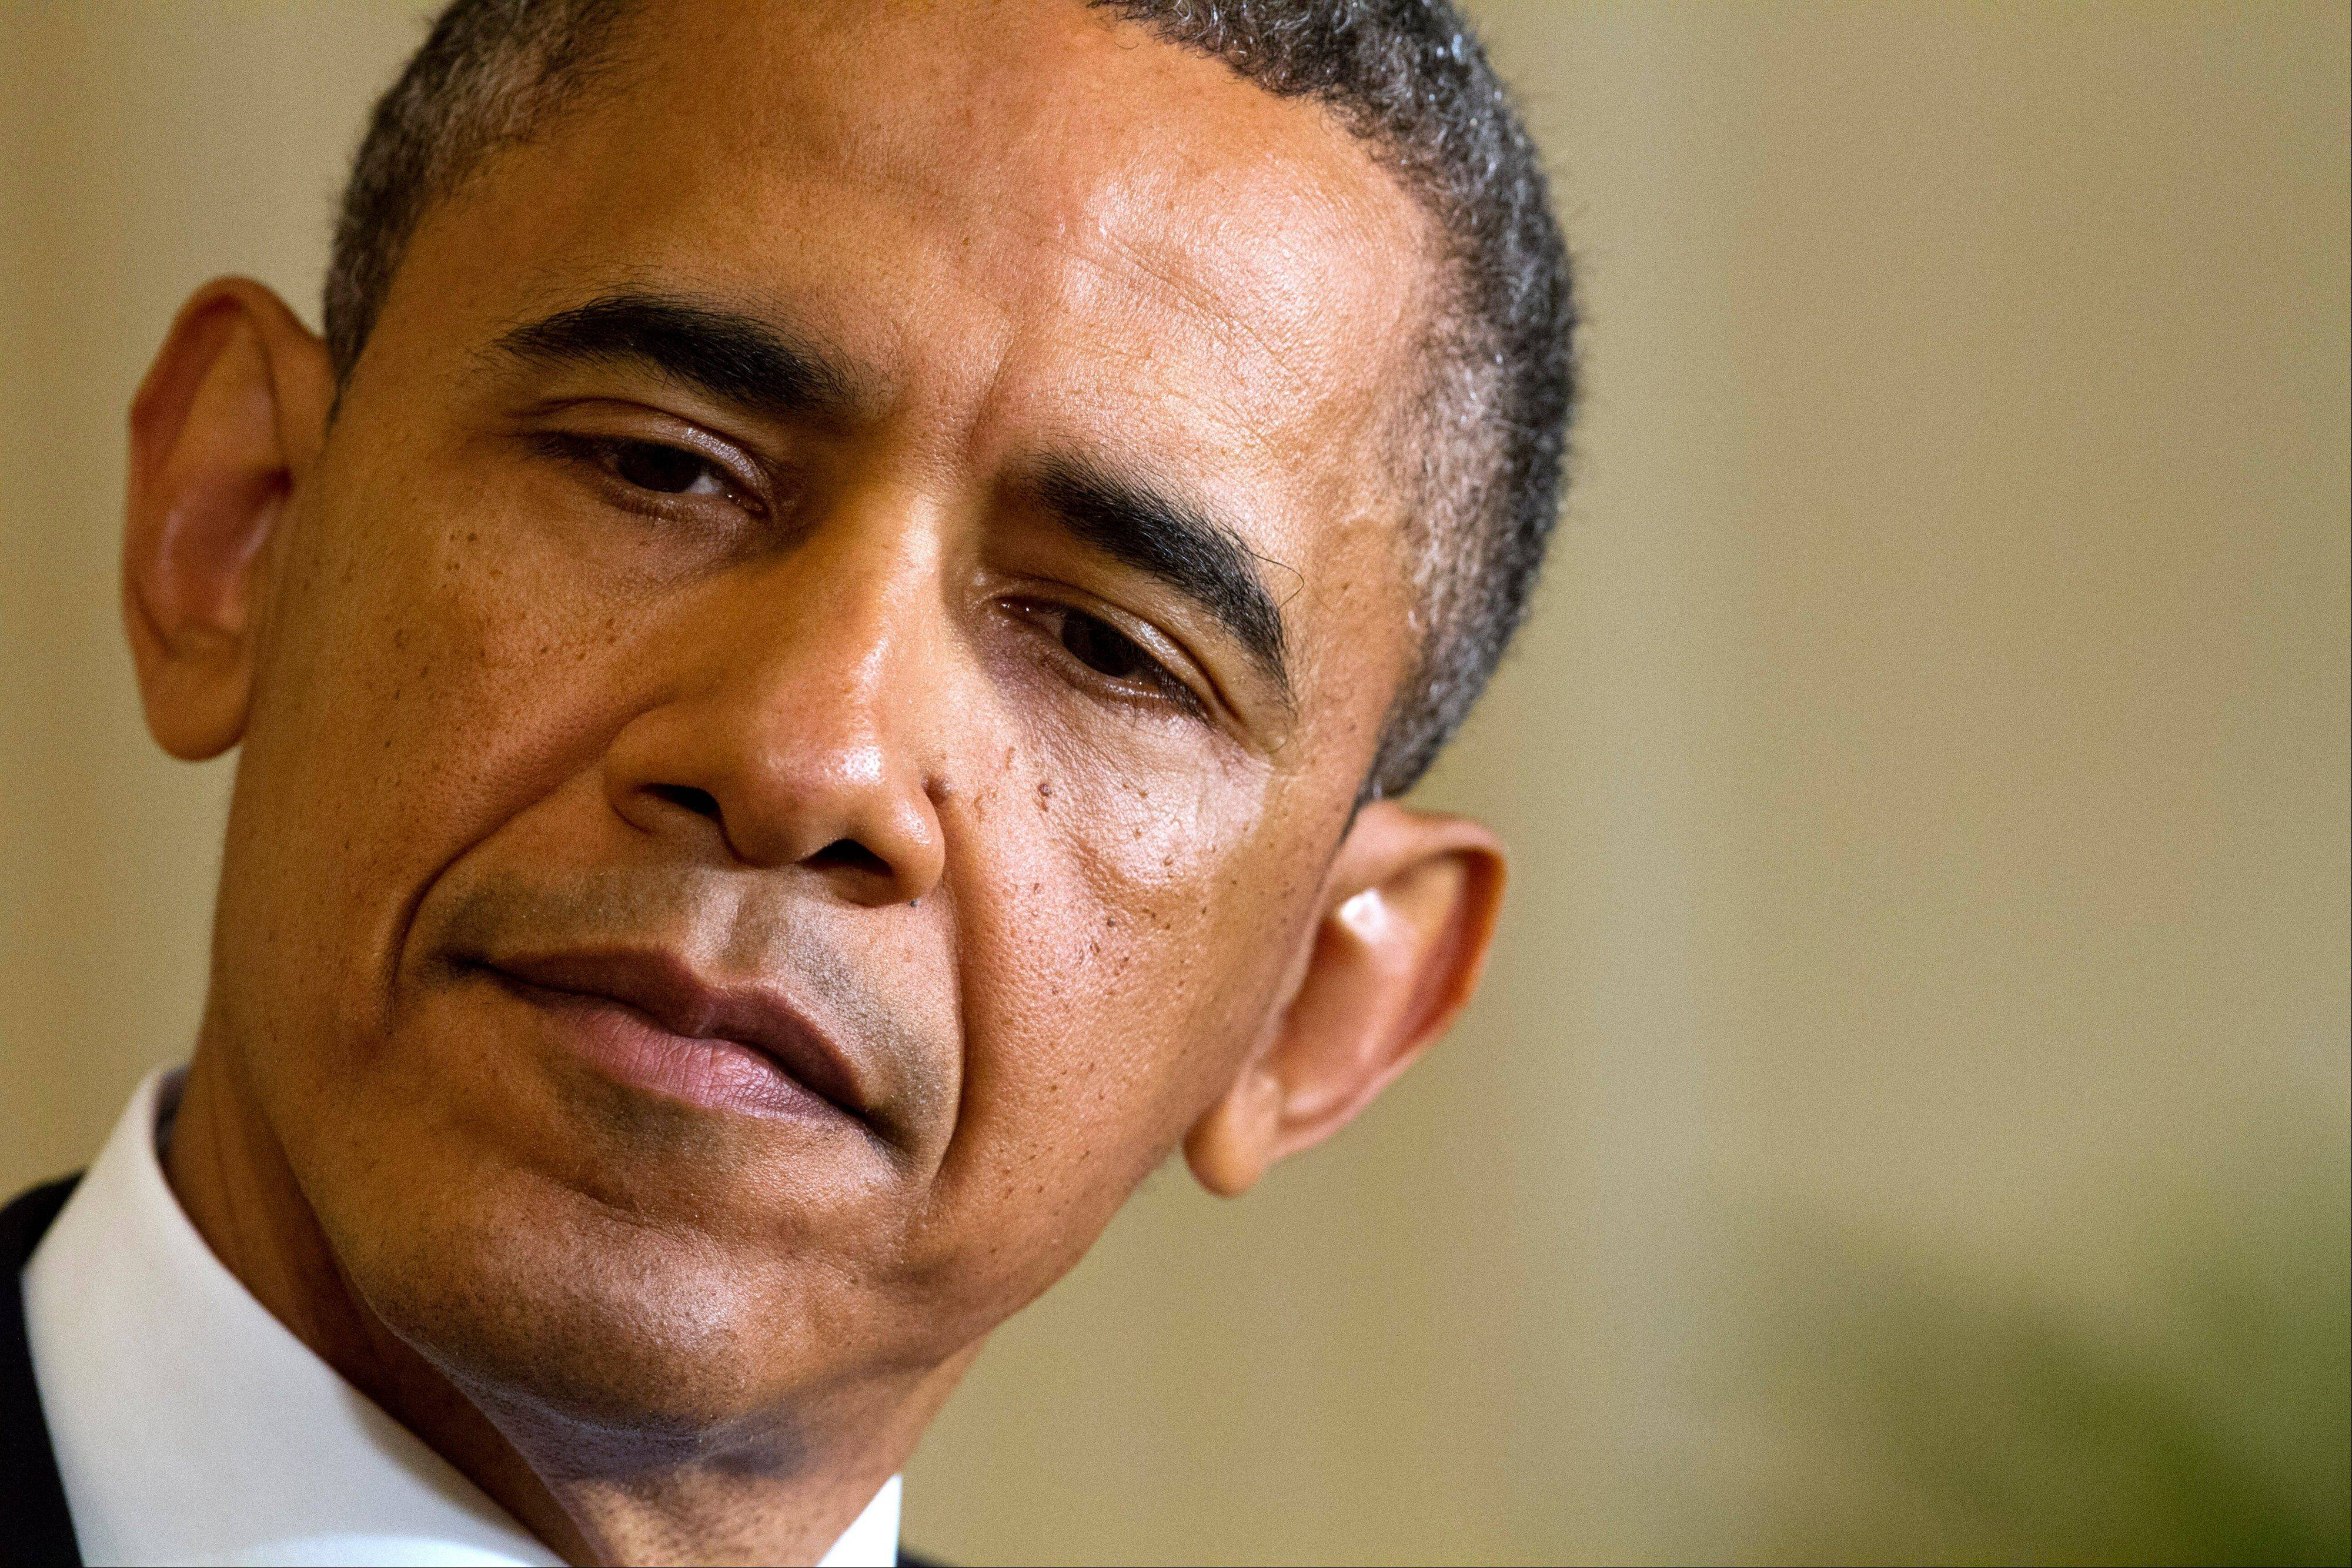 President Barack Obama on Monday called reports that the Internal Revenue Service targeted conservative groups �outrageous� and said anyone responsible should be held accountable.